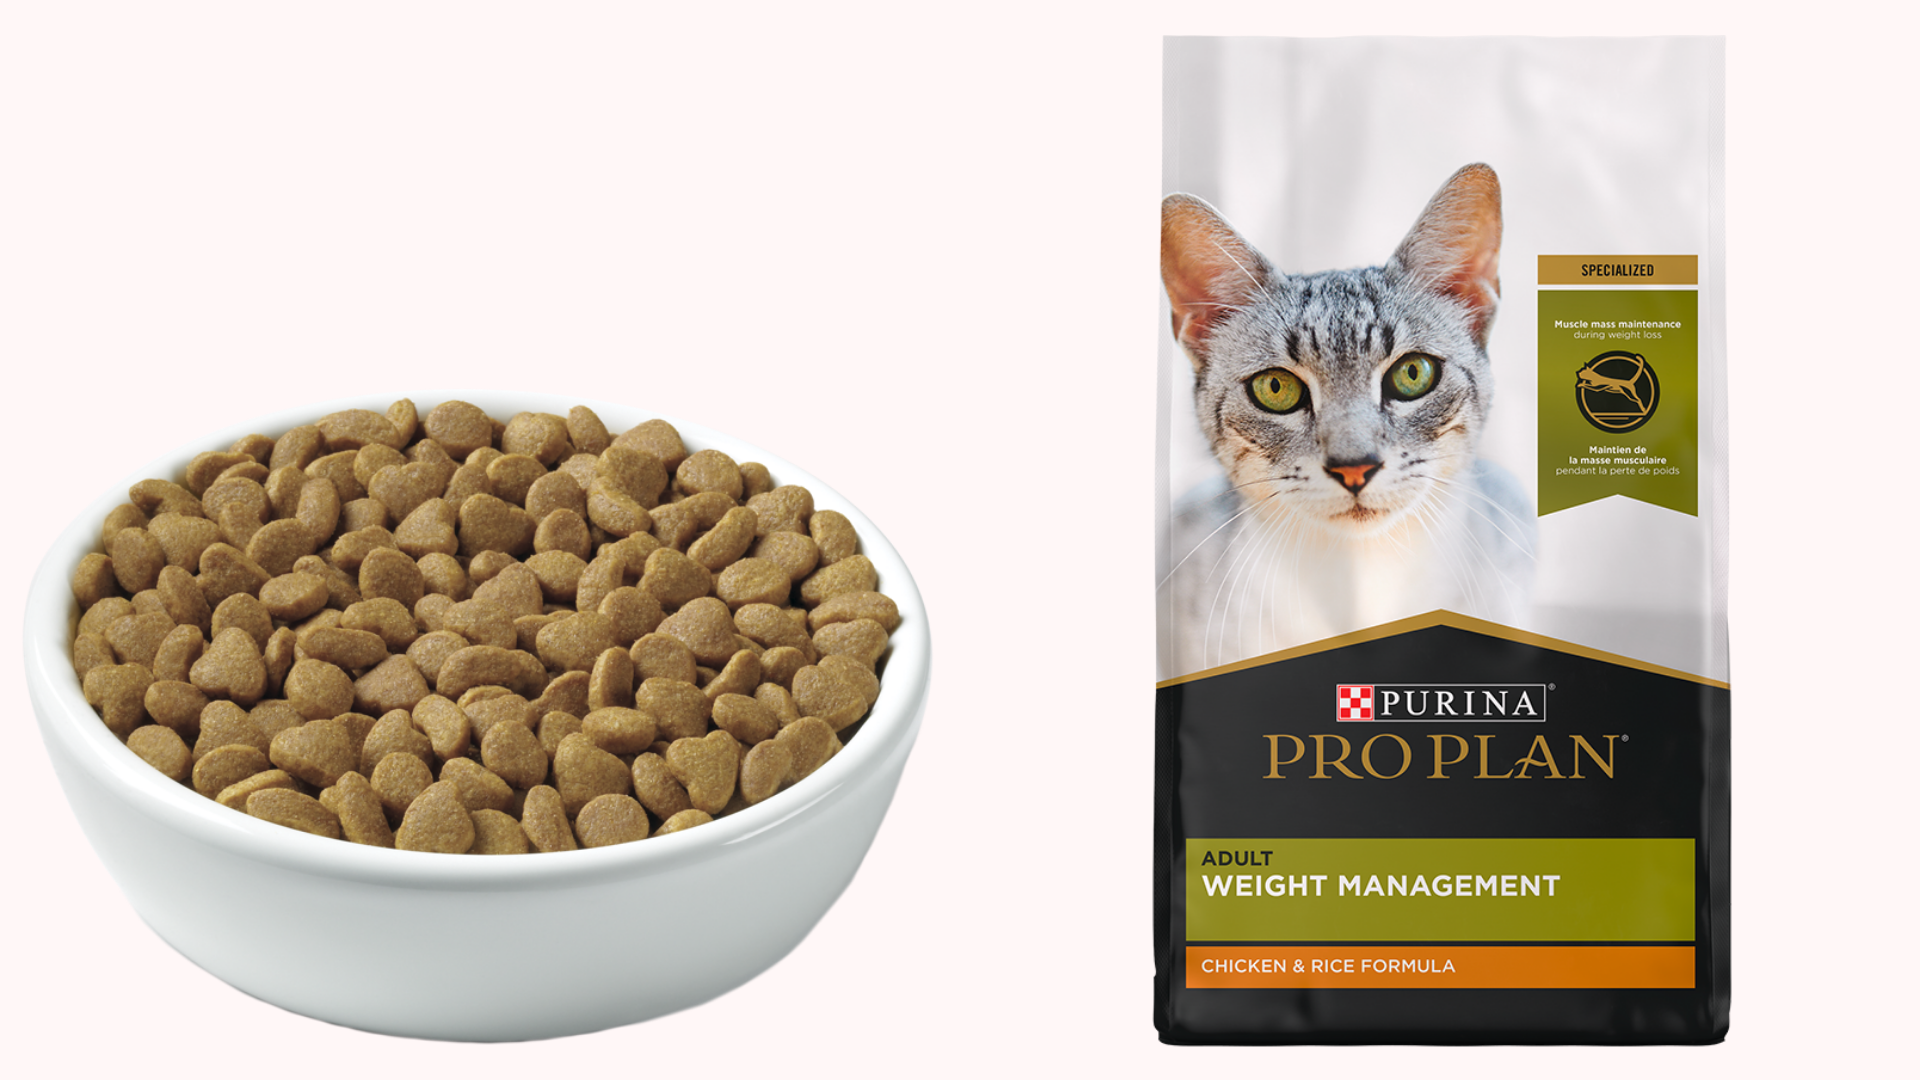 A bowl of cat food sits next to the packaging.